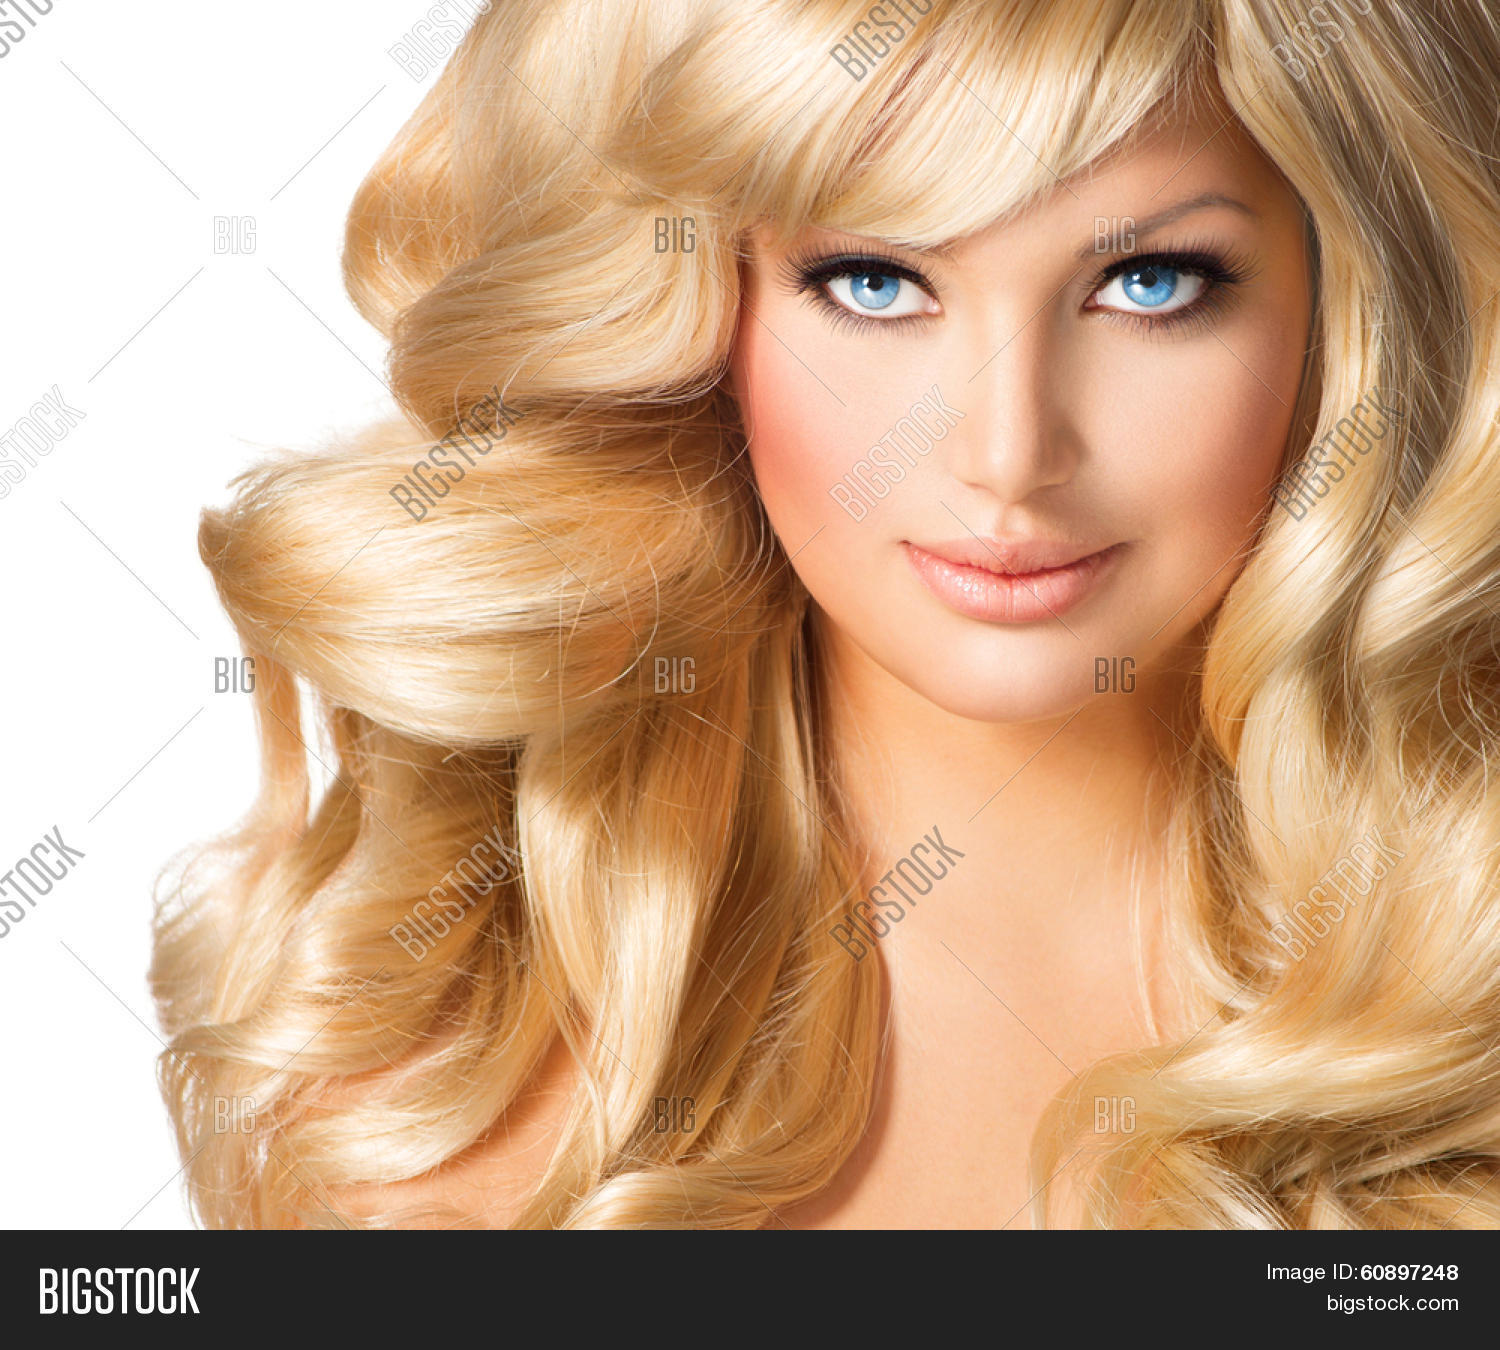 Beauty Blonde Woman Image Photo Free Trial Bigstock